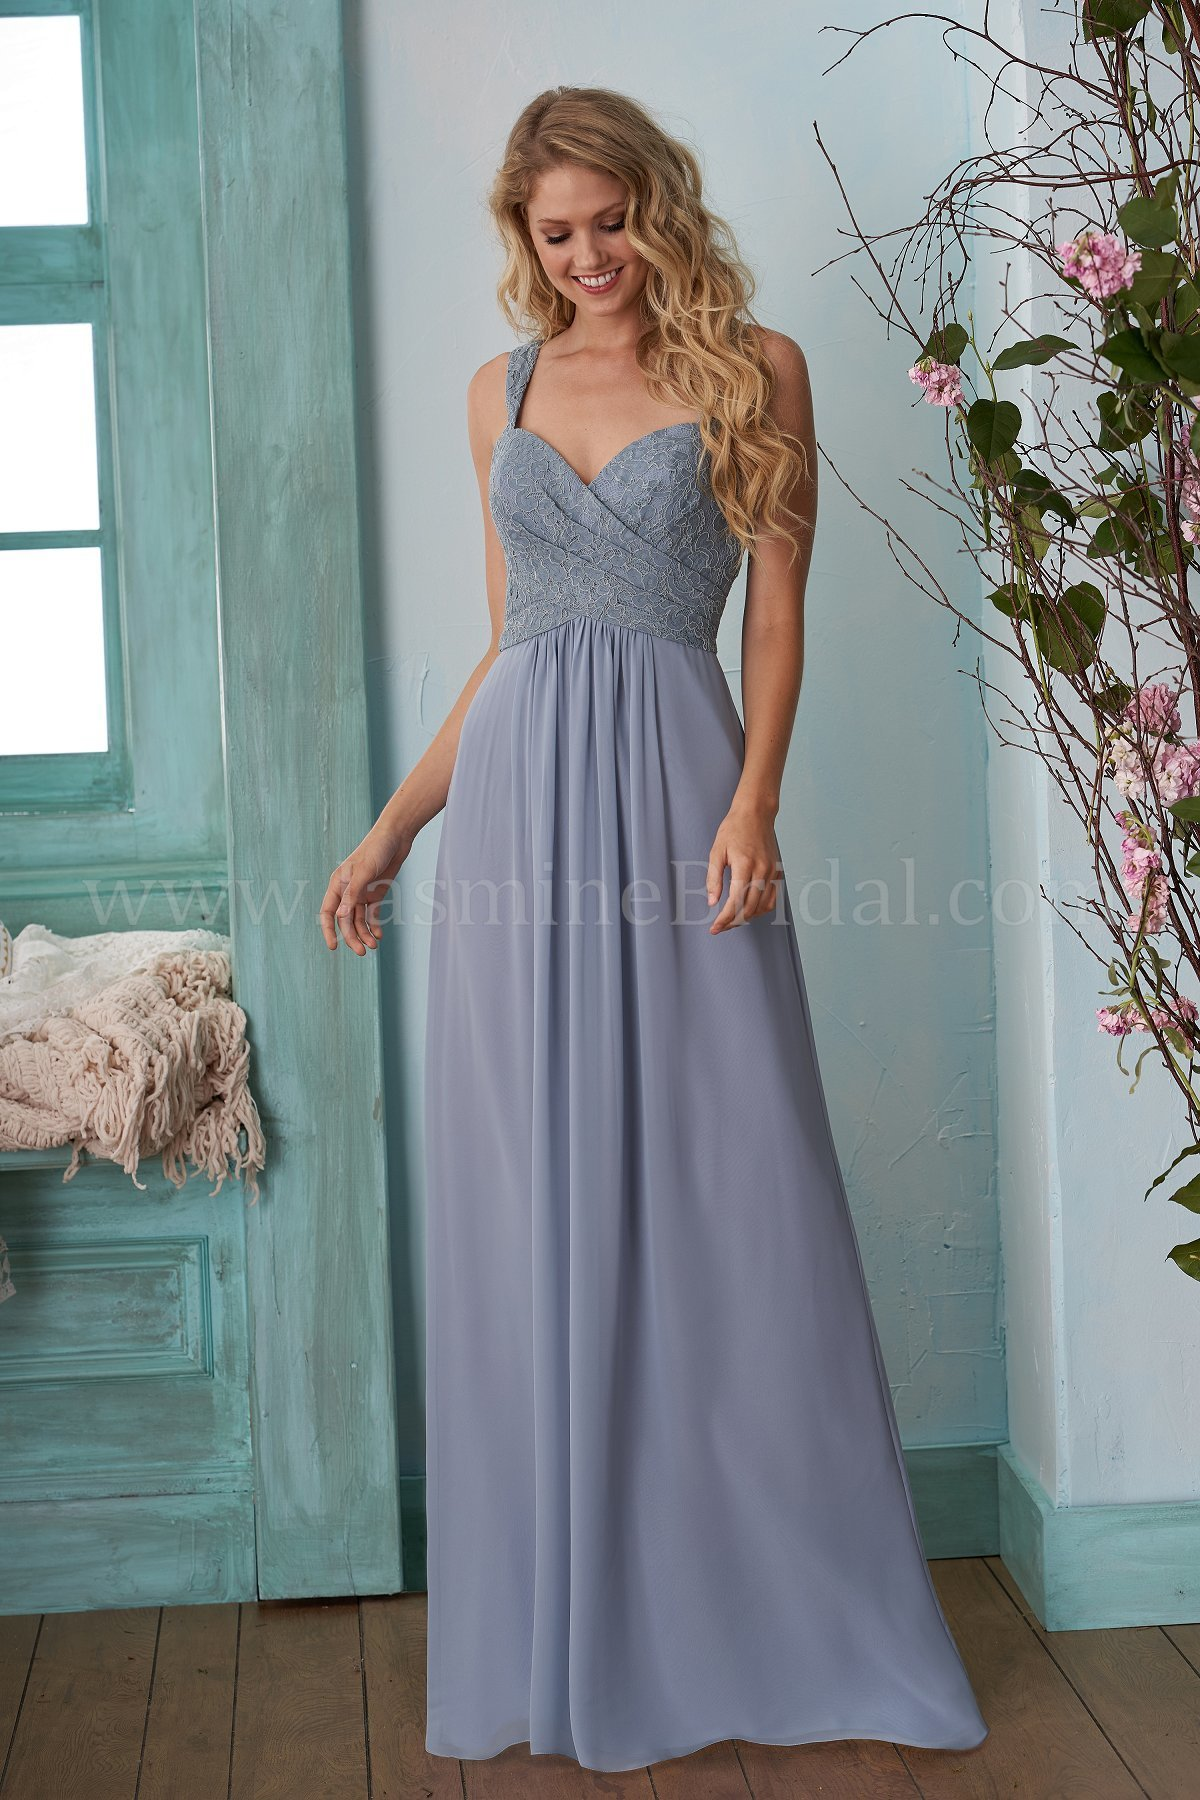 bridesmaid-dresses-B203009-F